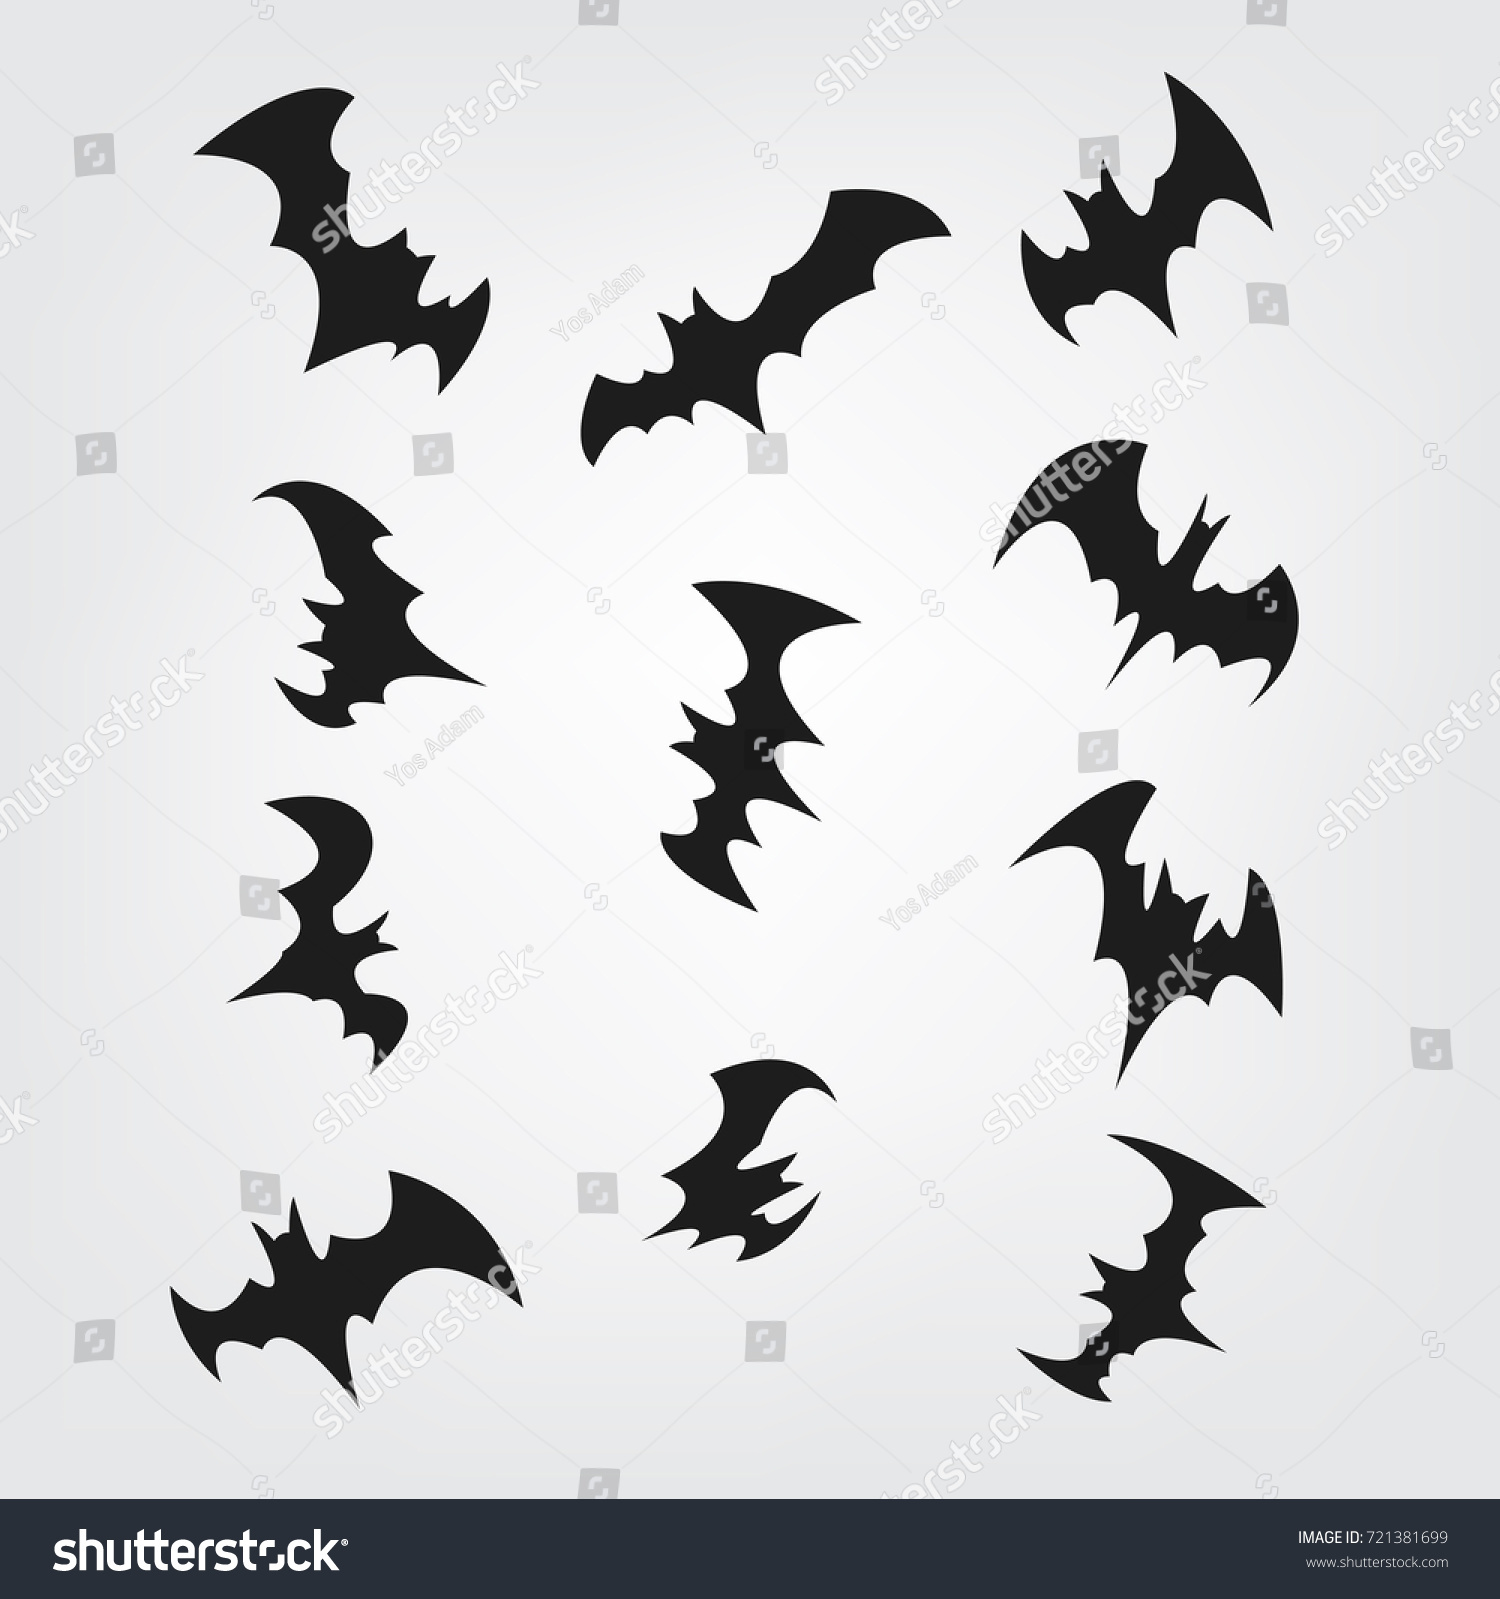 This is a graphic of Printable Bats for identification